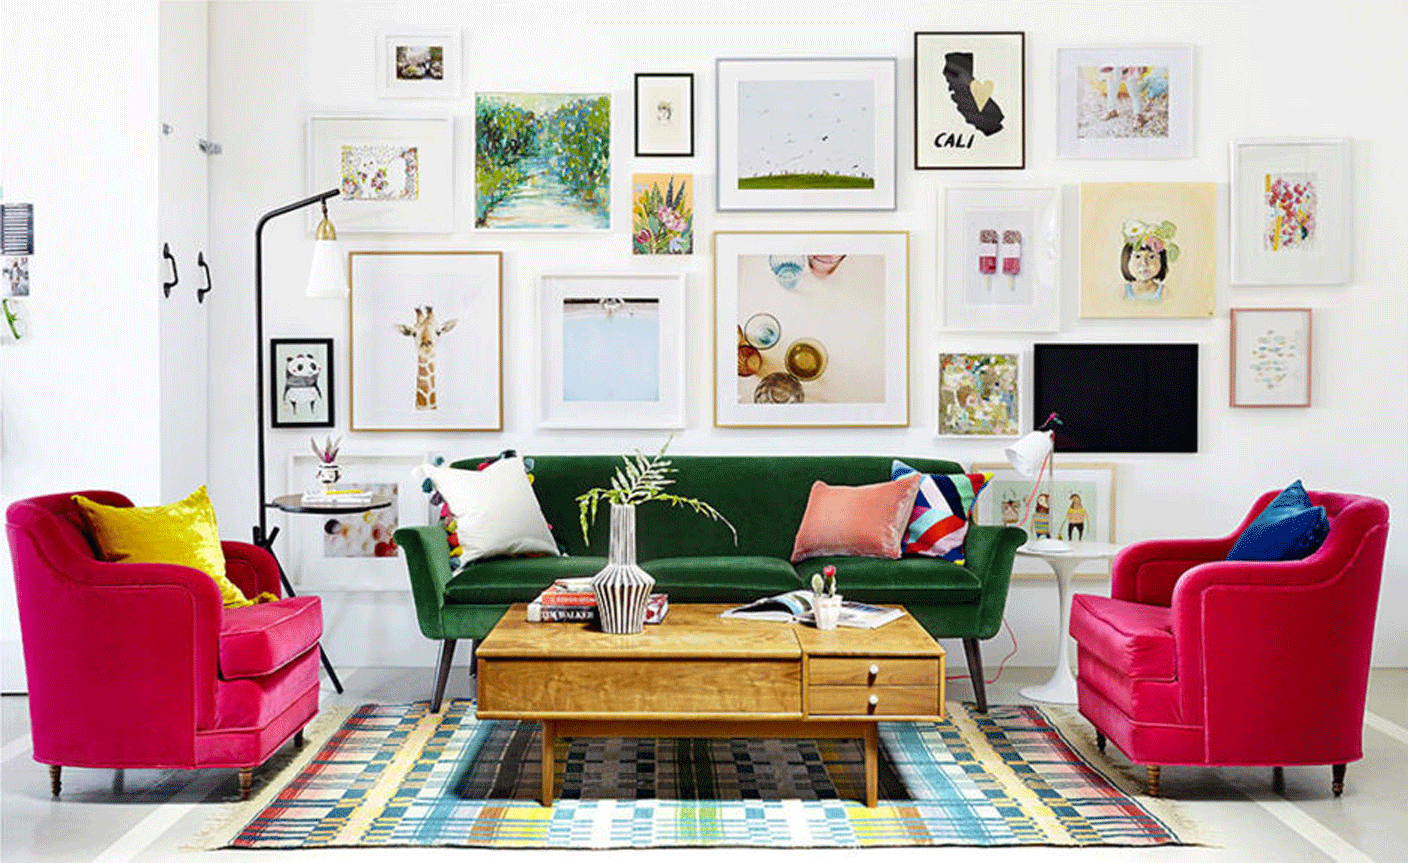 HOW TO BUY A COUCH  (AN EXCELLENT GUIDE PLUS LIVING ROOM GOALS)